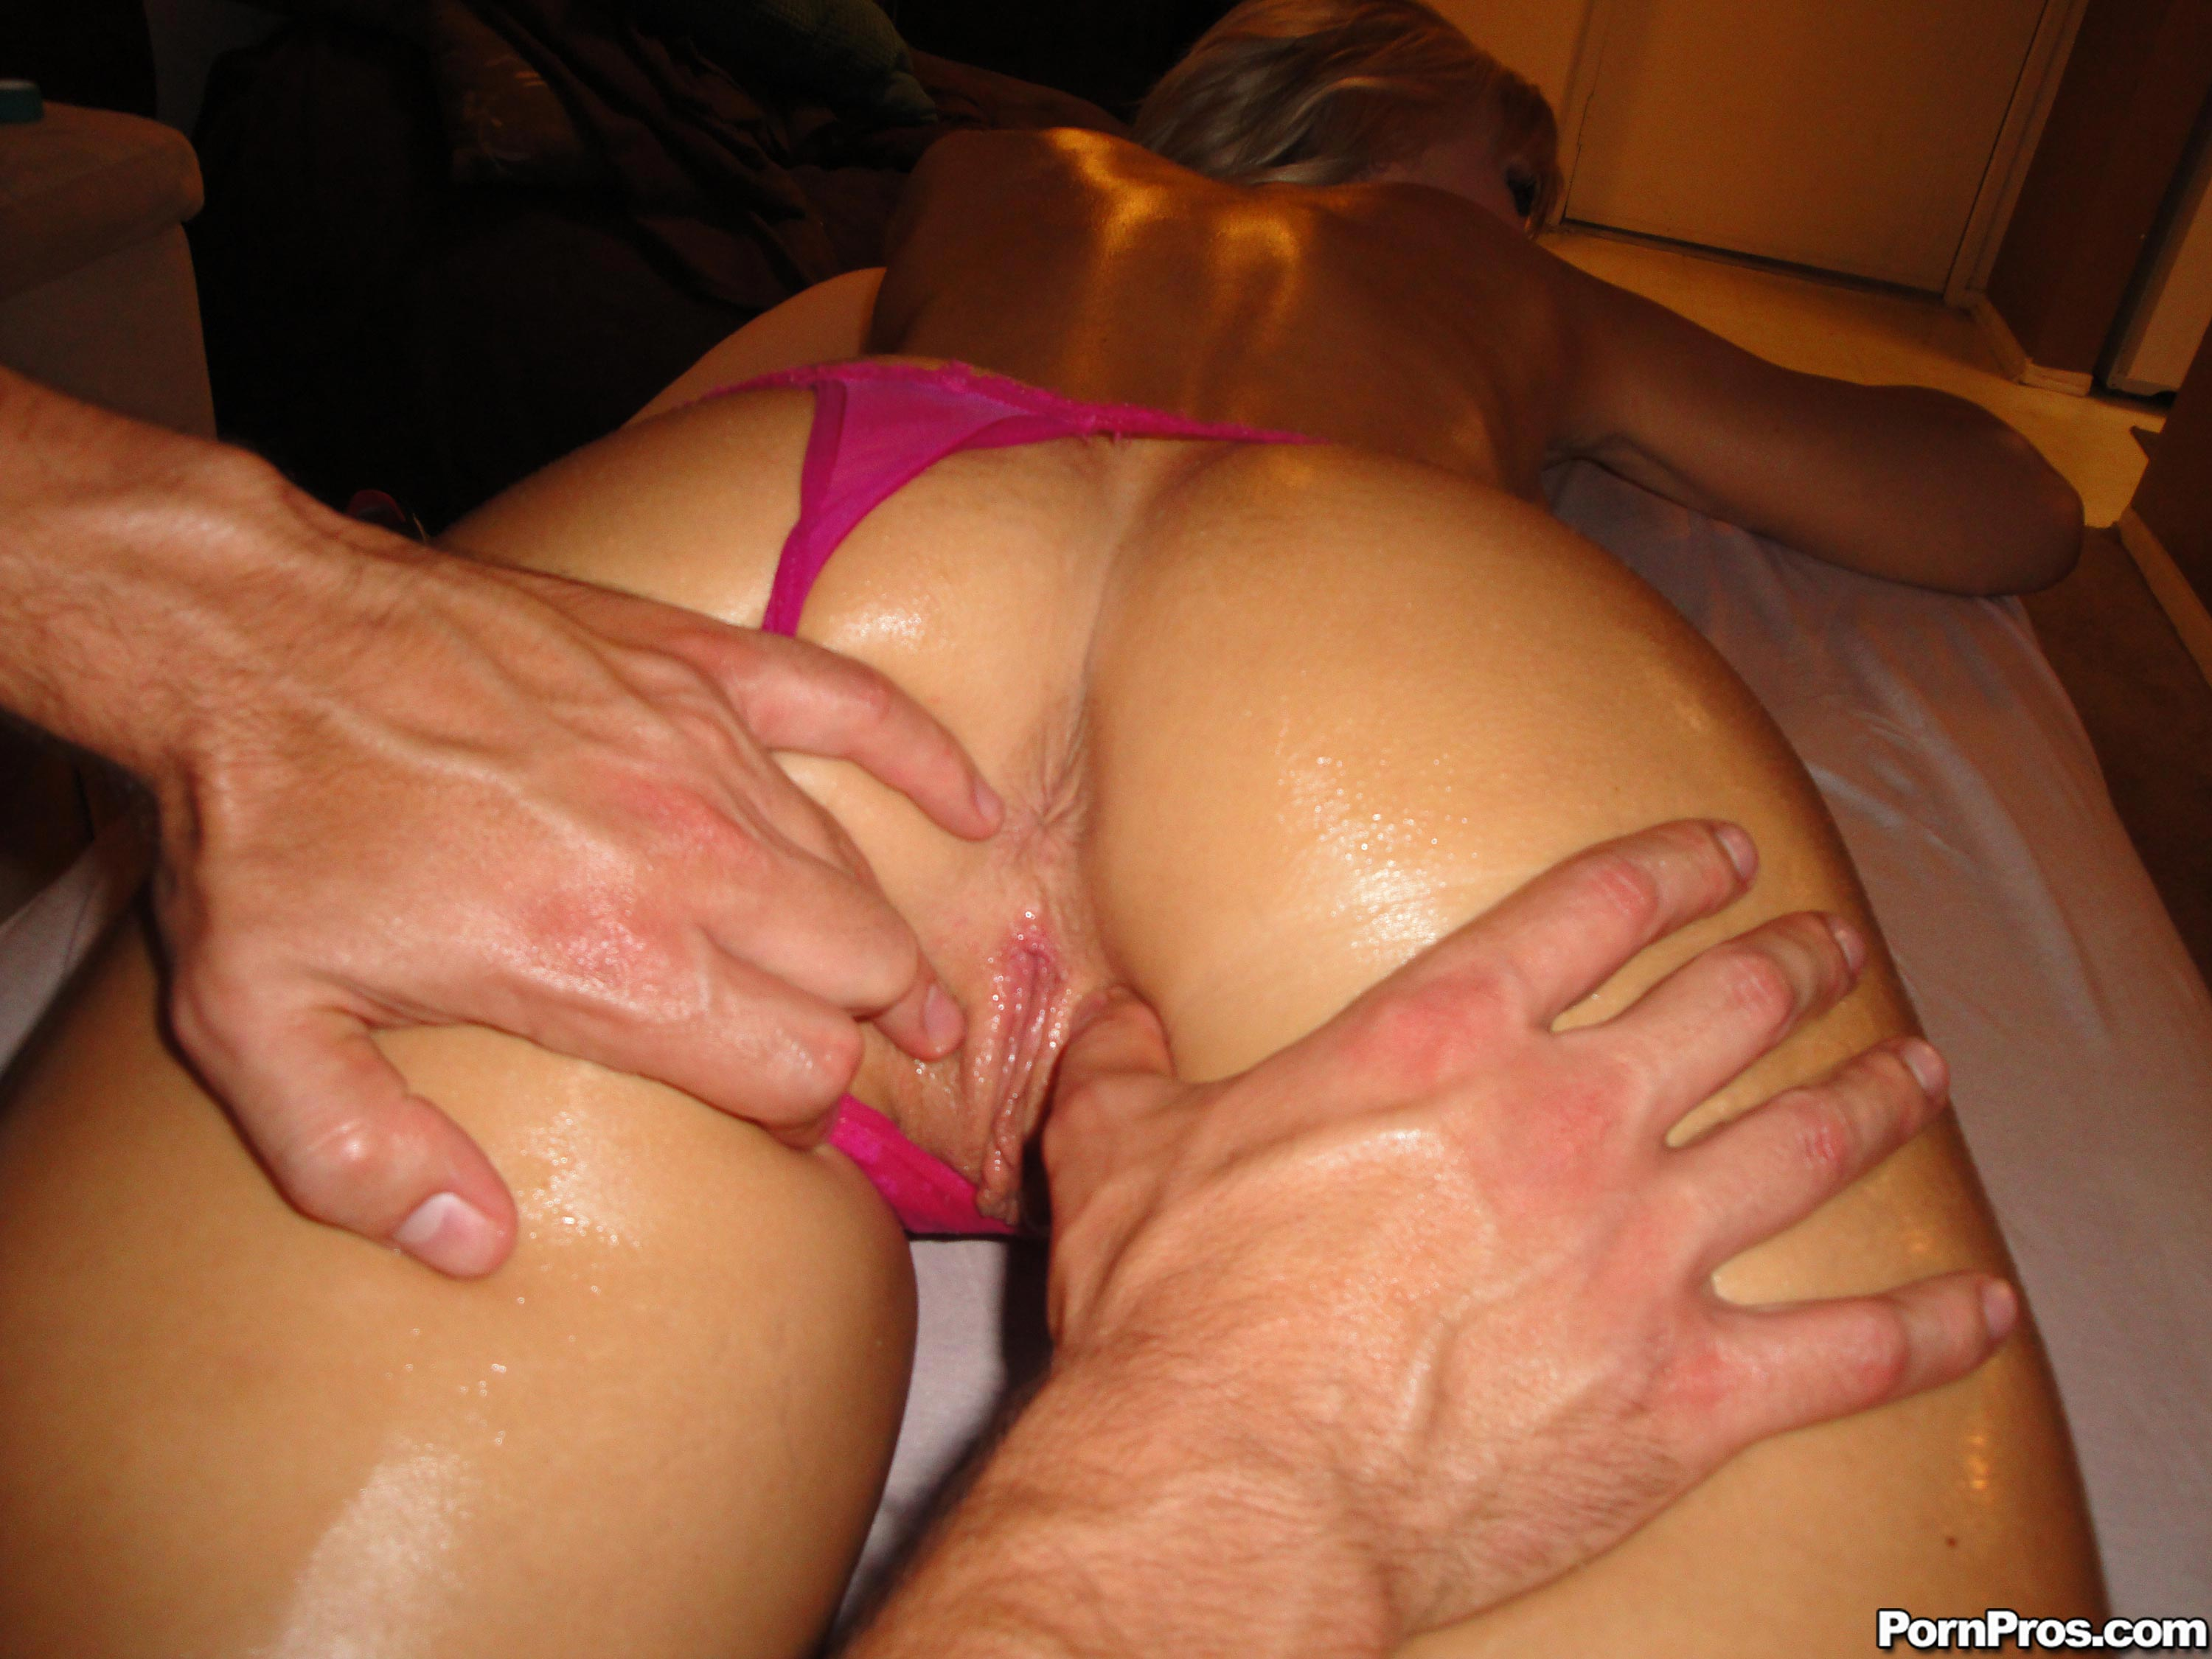 Massage with huge buttocks fat lover 4mass1 3